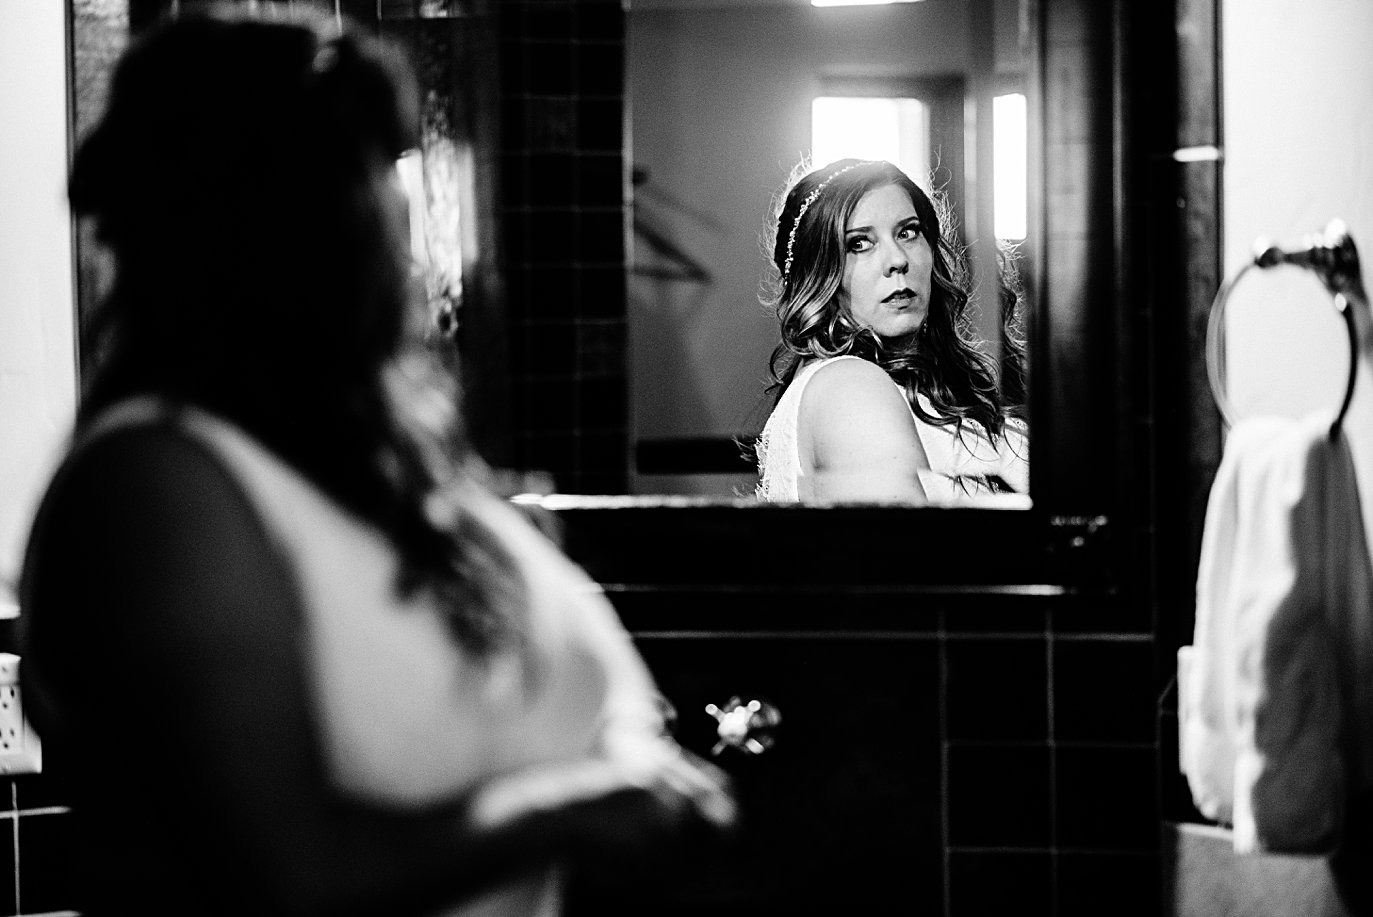 bride final look in the mirror at Lily Lake Elopement by Estes Park elopement photographer Jennie Crate